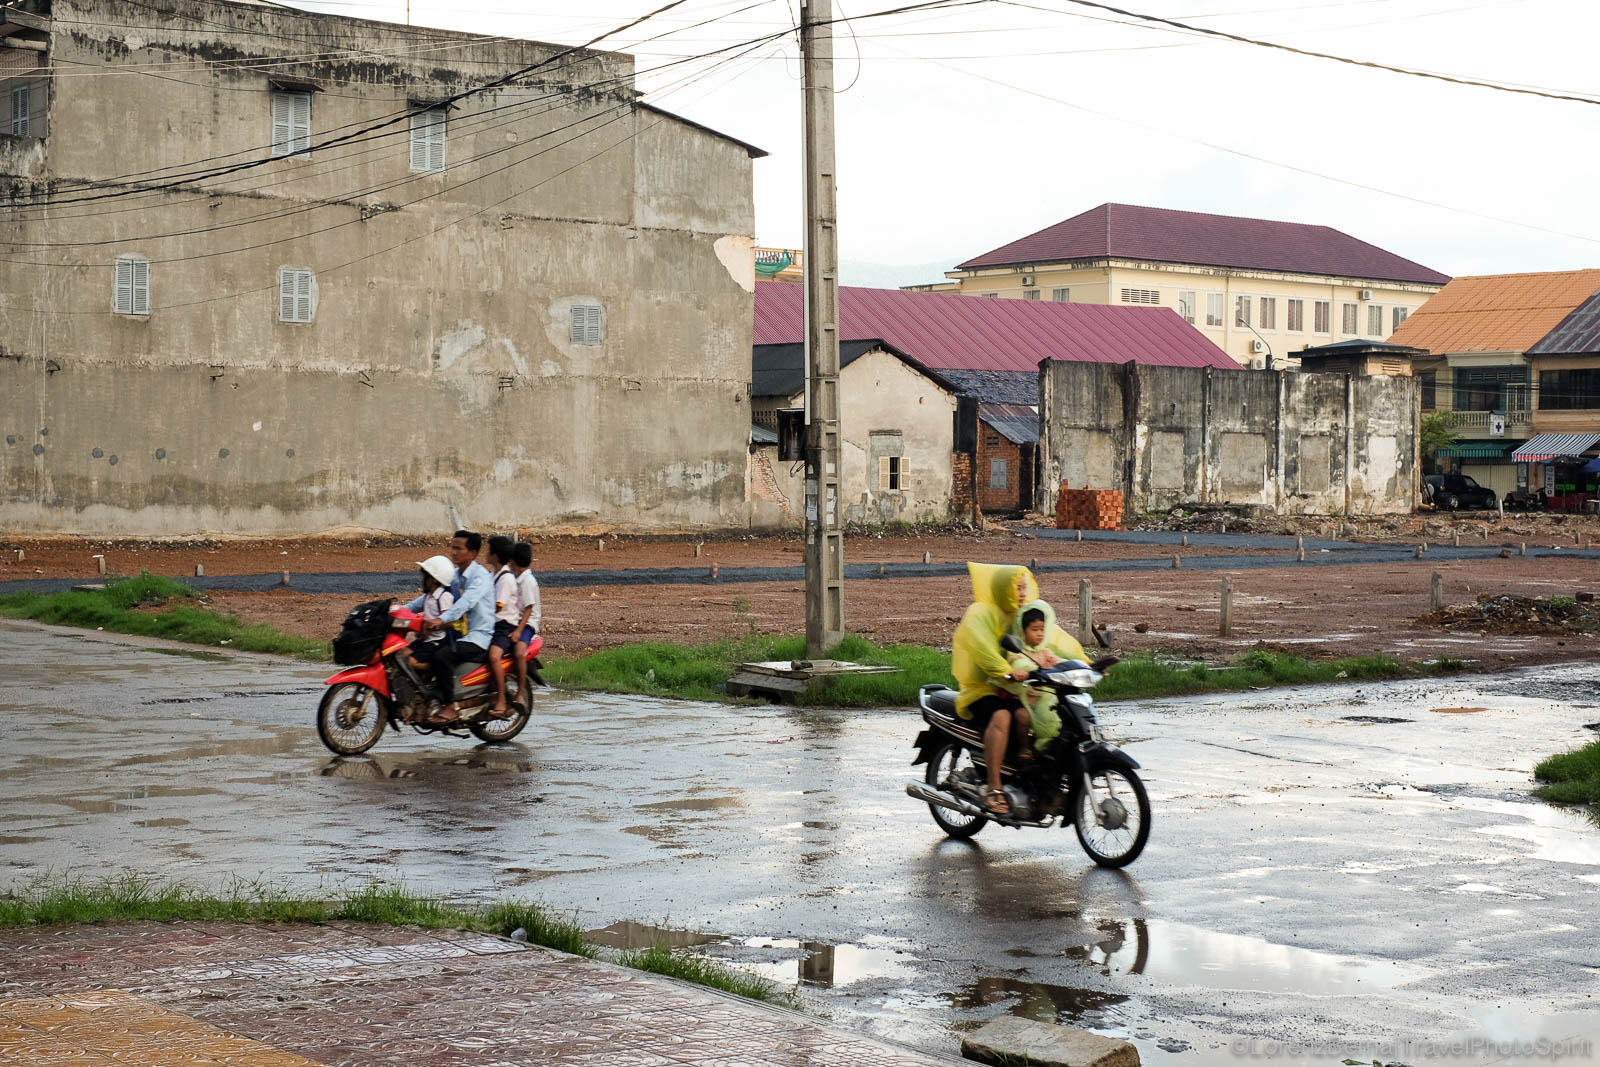 Local people driving under the monsoon rain, in Kampot, Cambodia